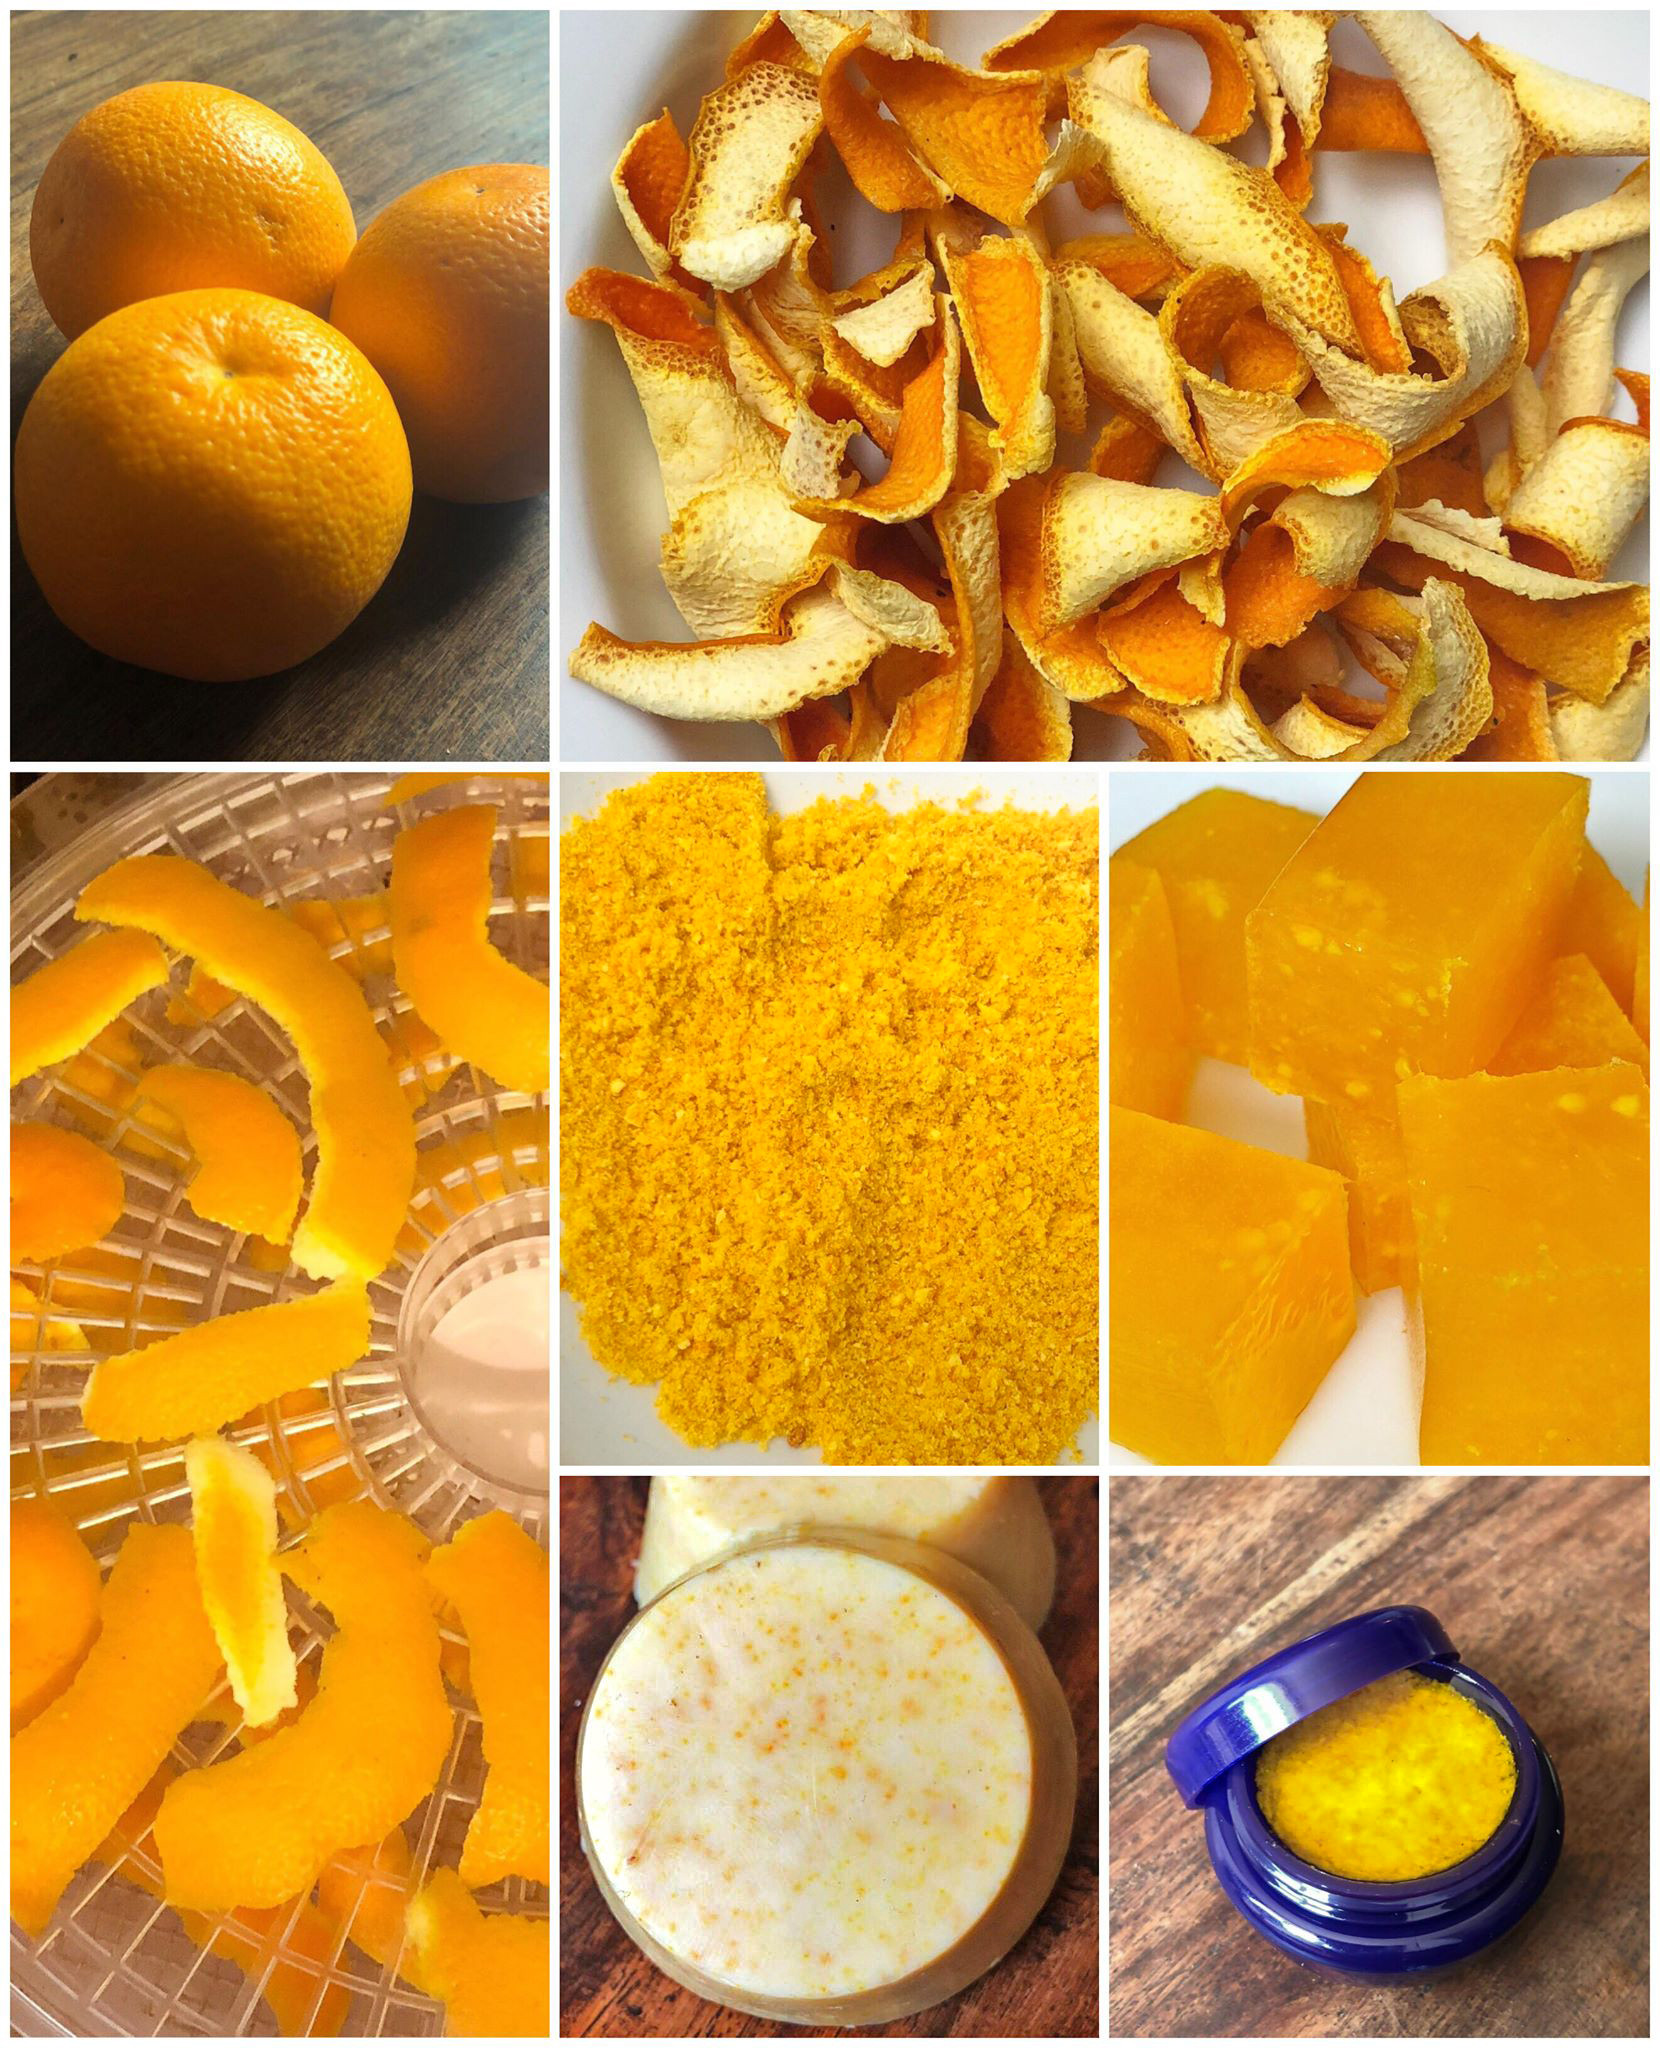 The Many Uses of Orange Peels